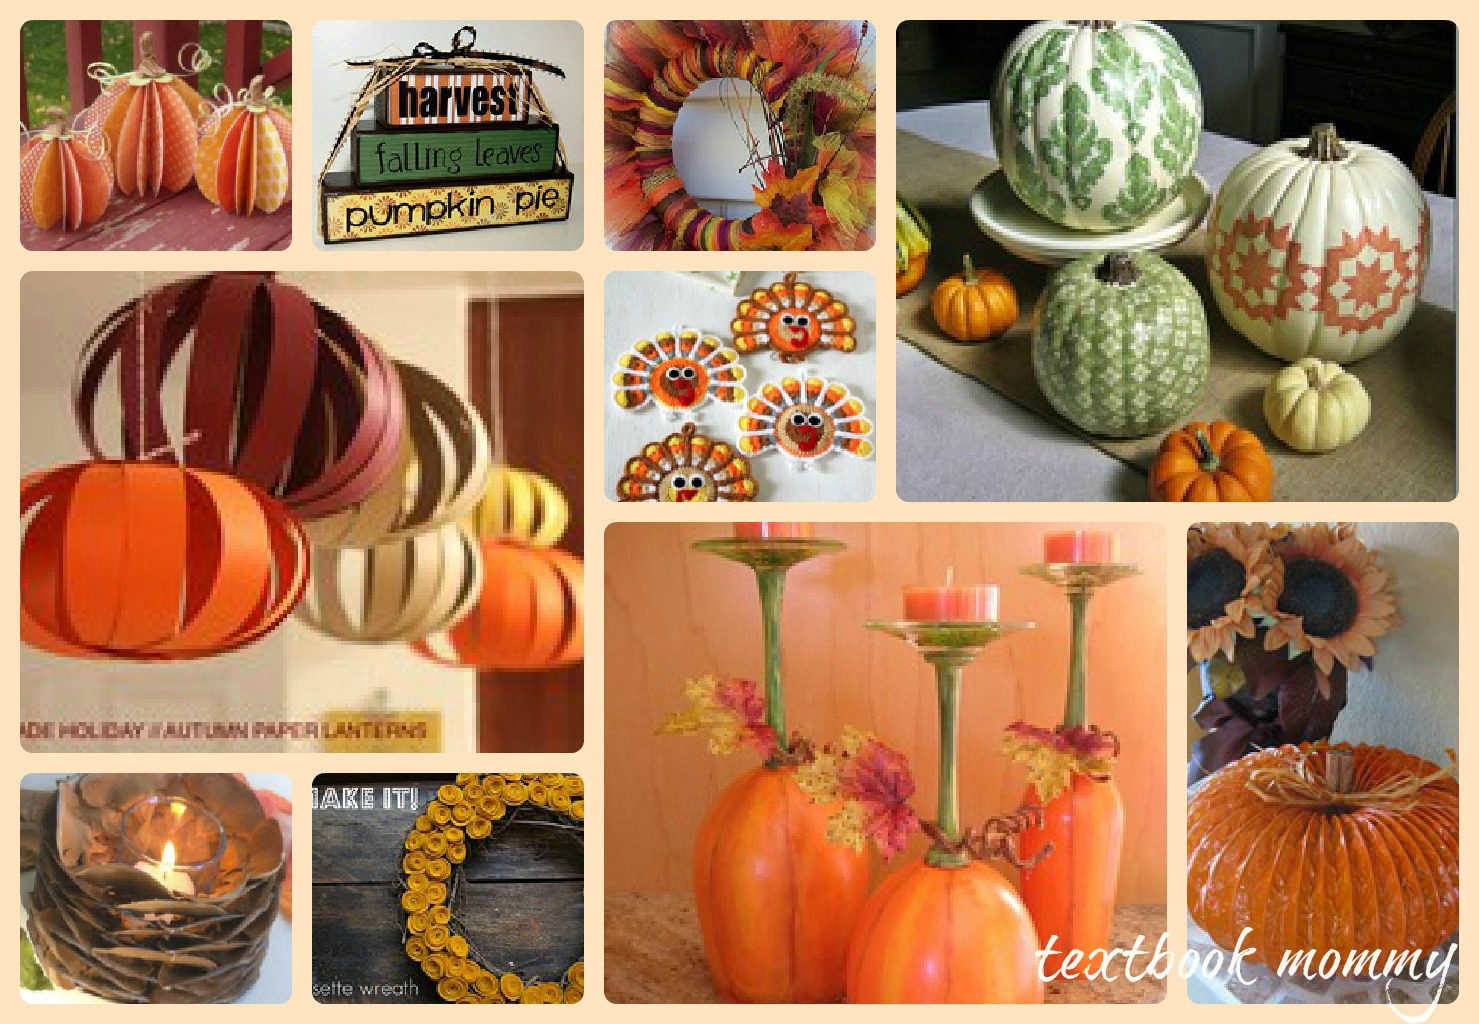 Textbook mommy 10 fantastic thanksgiving home decor crafts for Thanksgiving home decorations